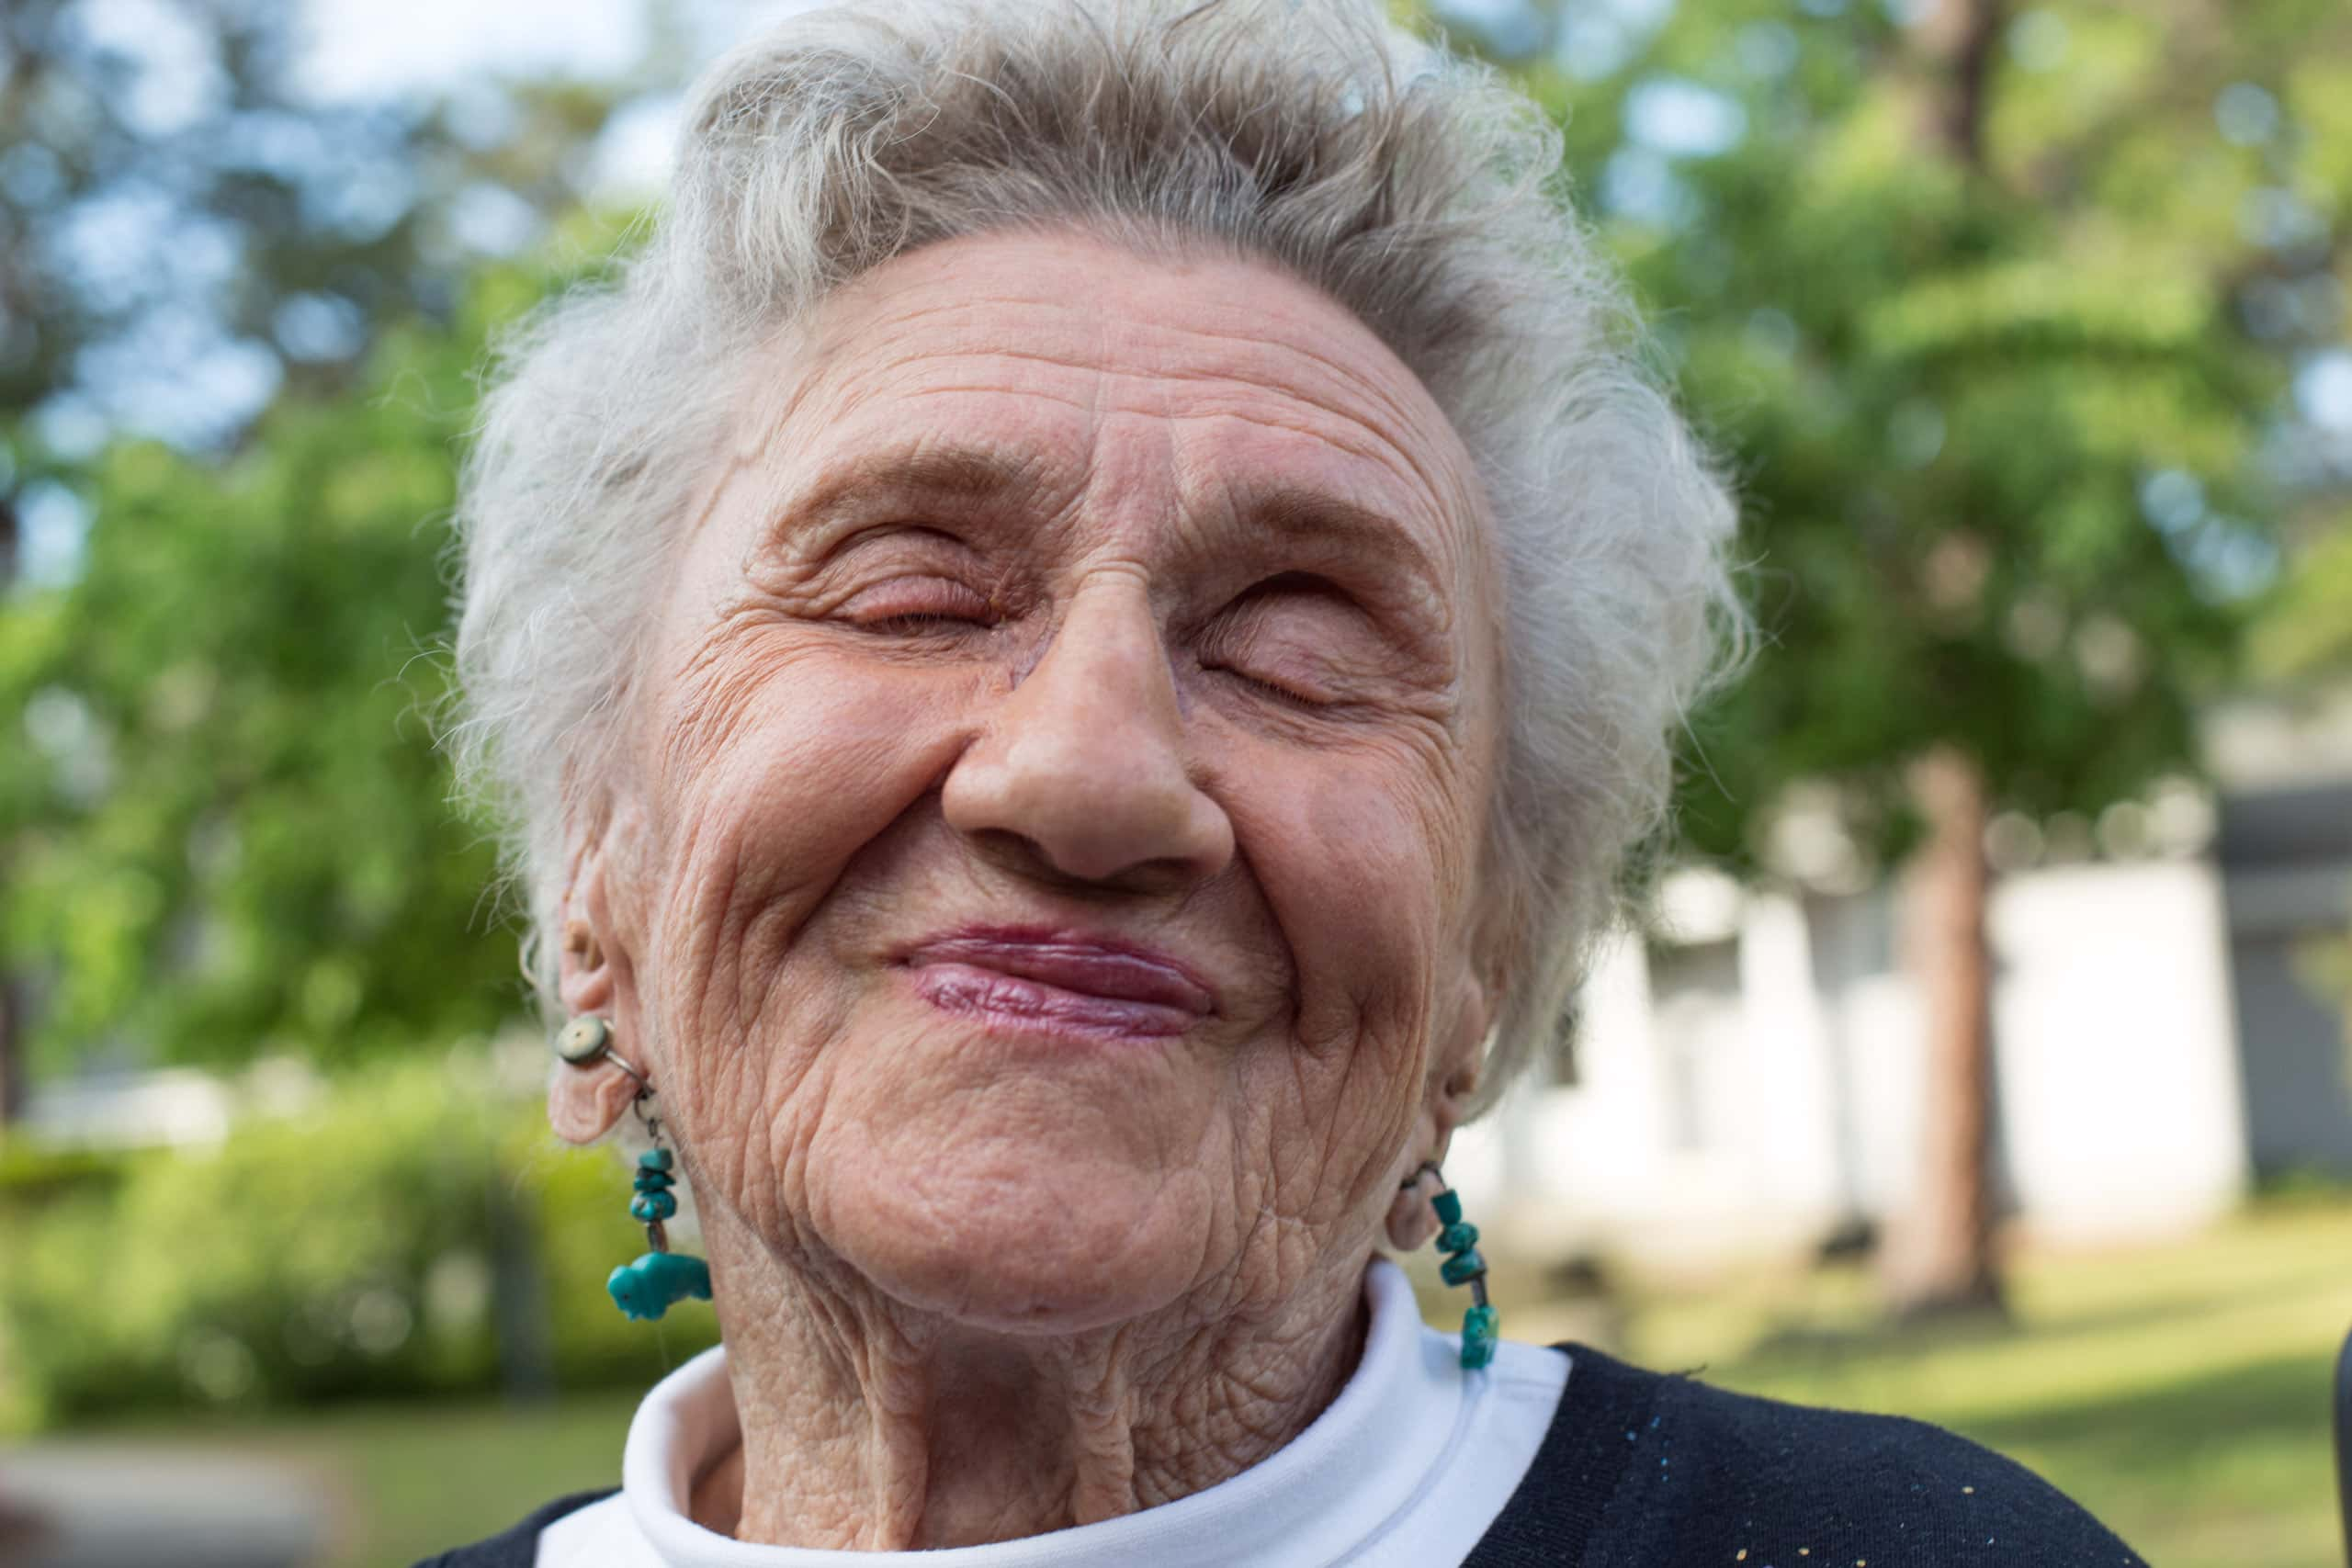 A close up portrait of a 102 year old woman with her eyes closed and smile. This photograph is part of the To Live 10,000 Years series by Danny Goldfield.